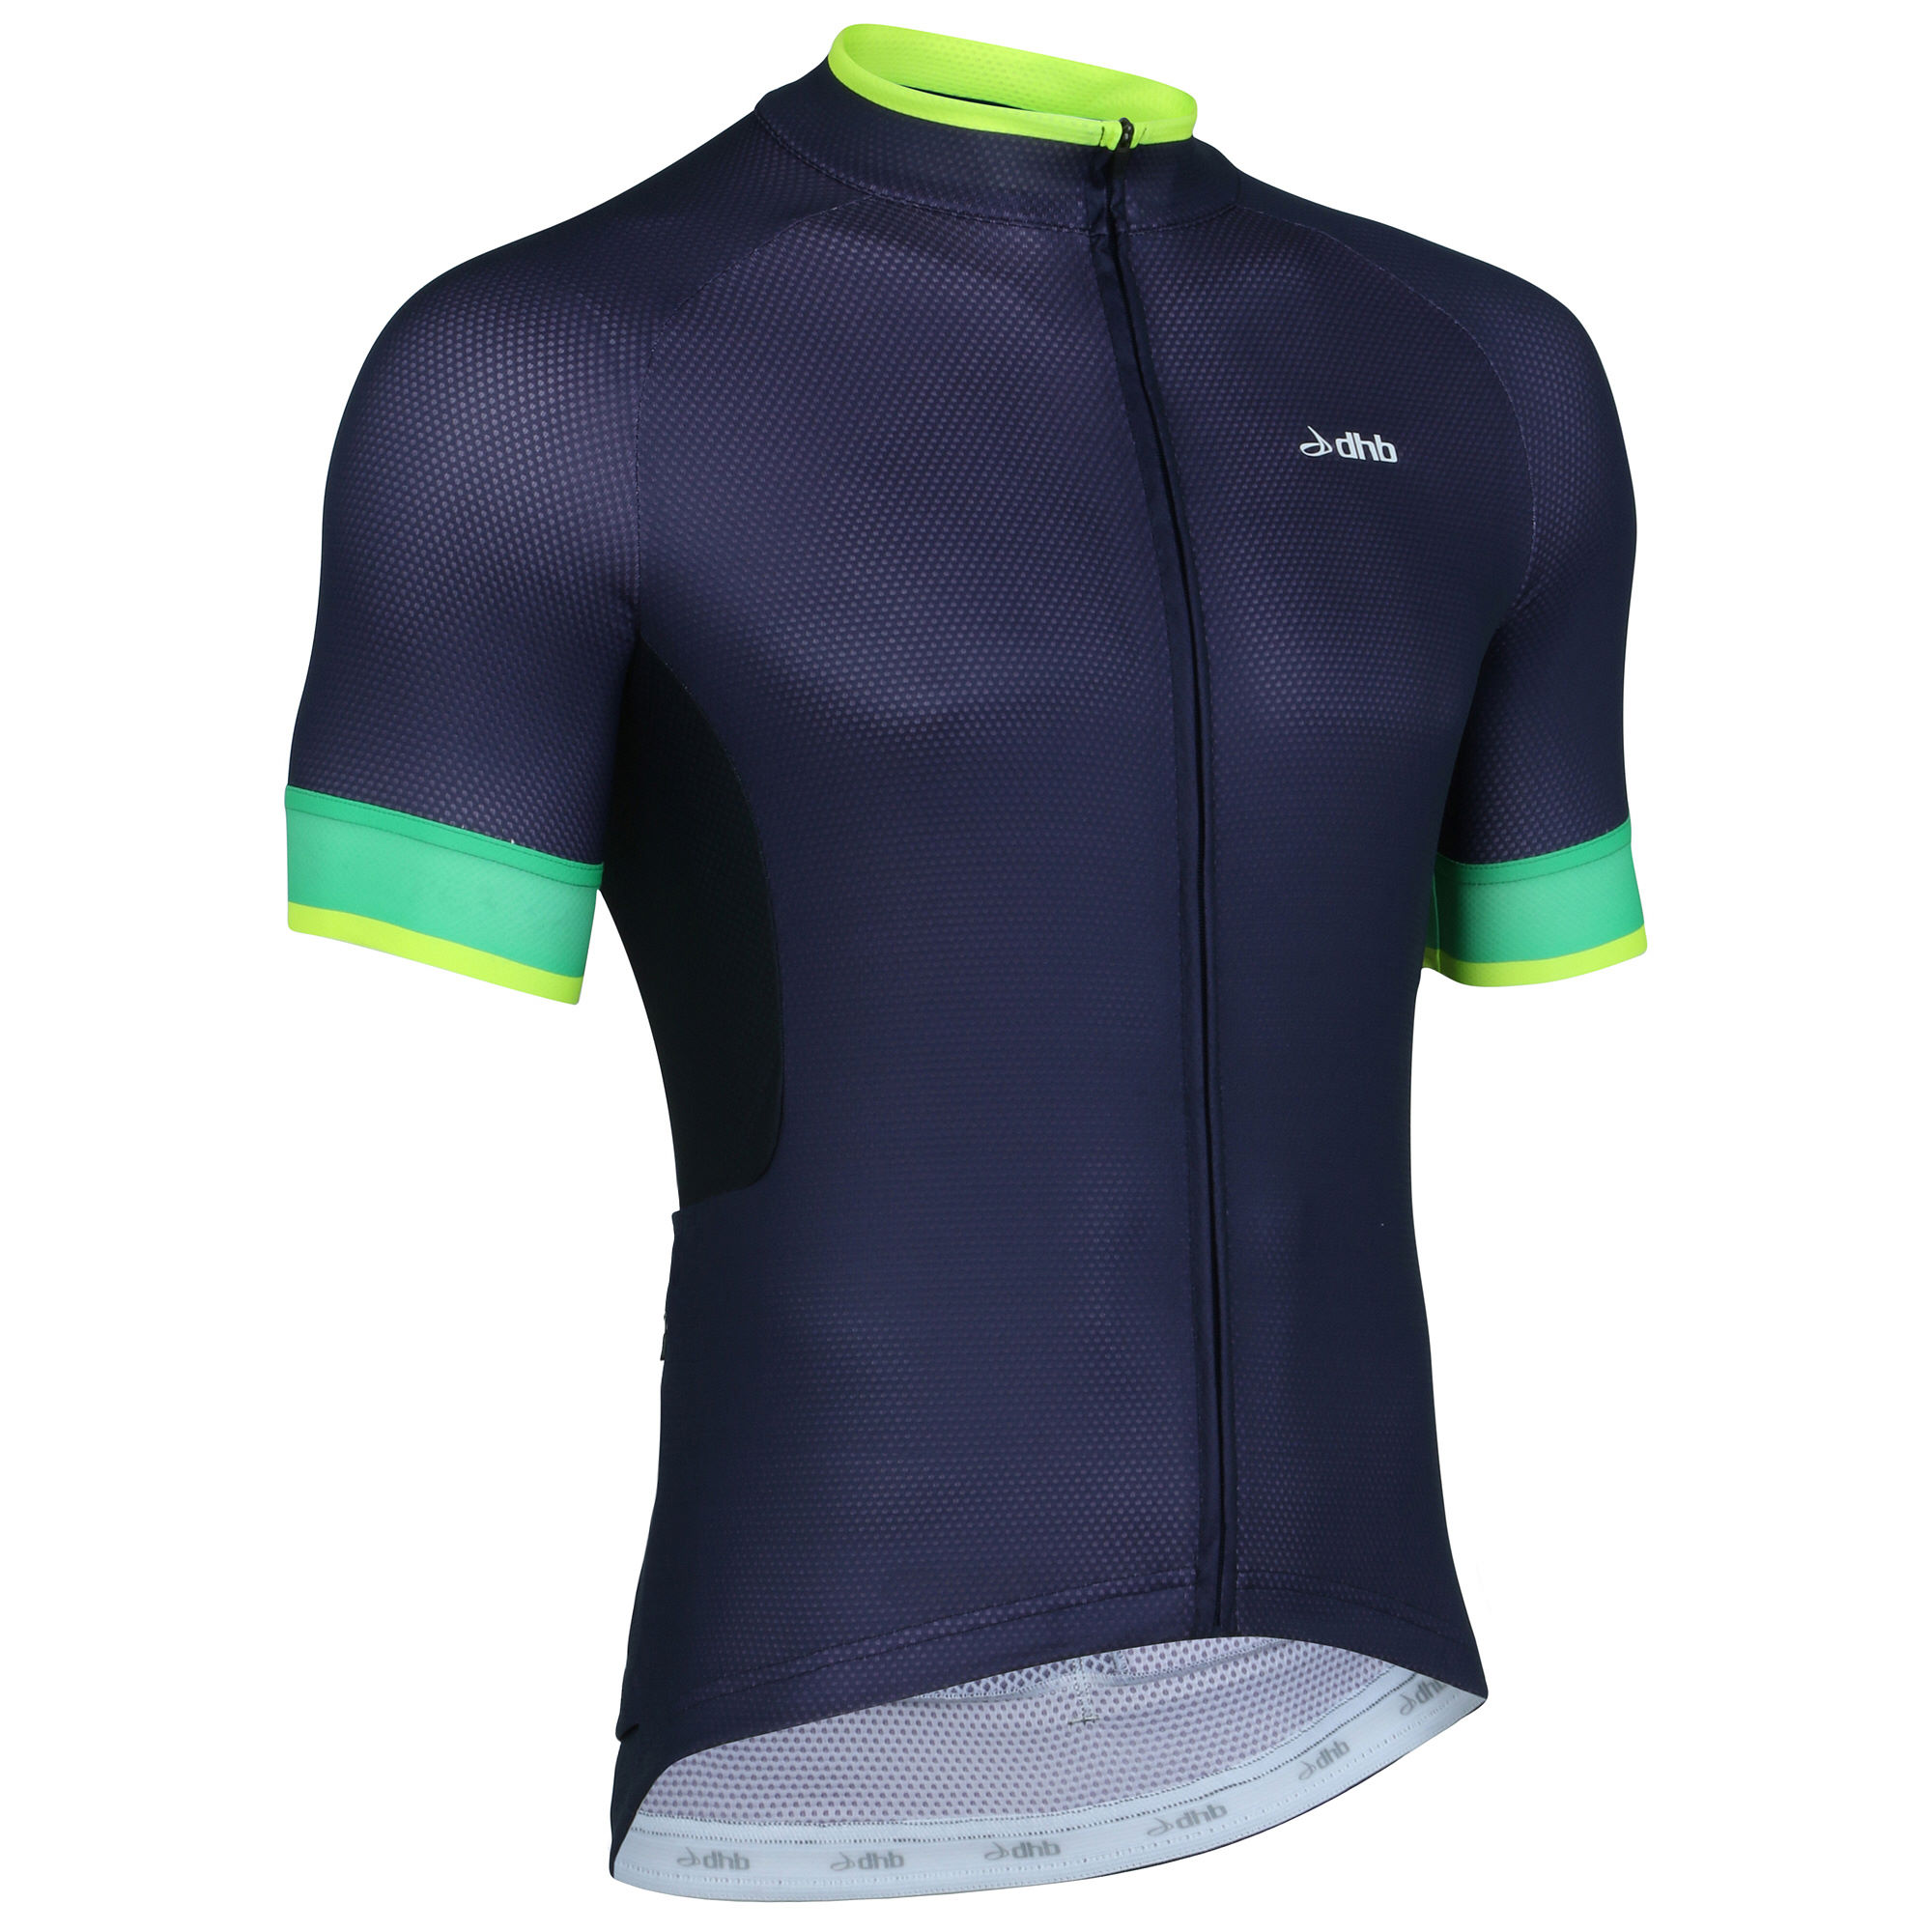 0c580c357 dhb-Aeron-Short-Sleeve-Jersey-Short-Sleeve-Jerseys-Navy-SS16-TW0251 ...